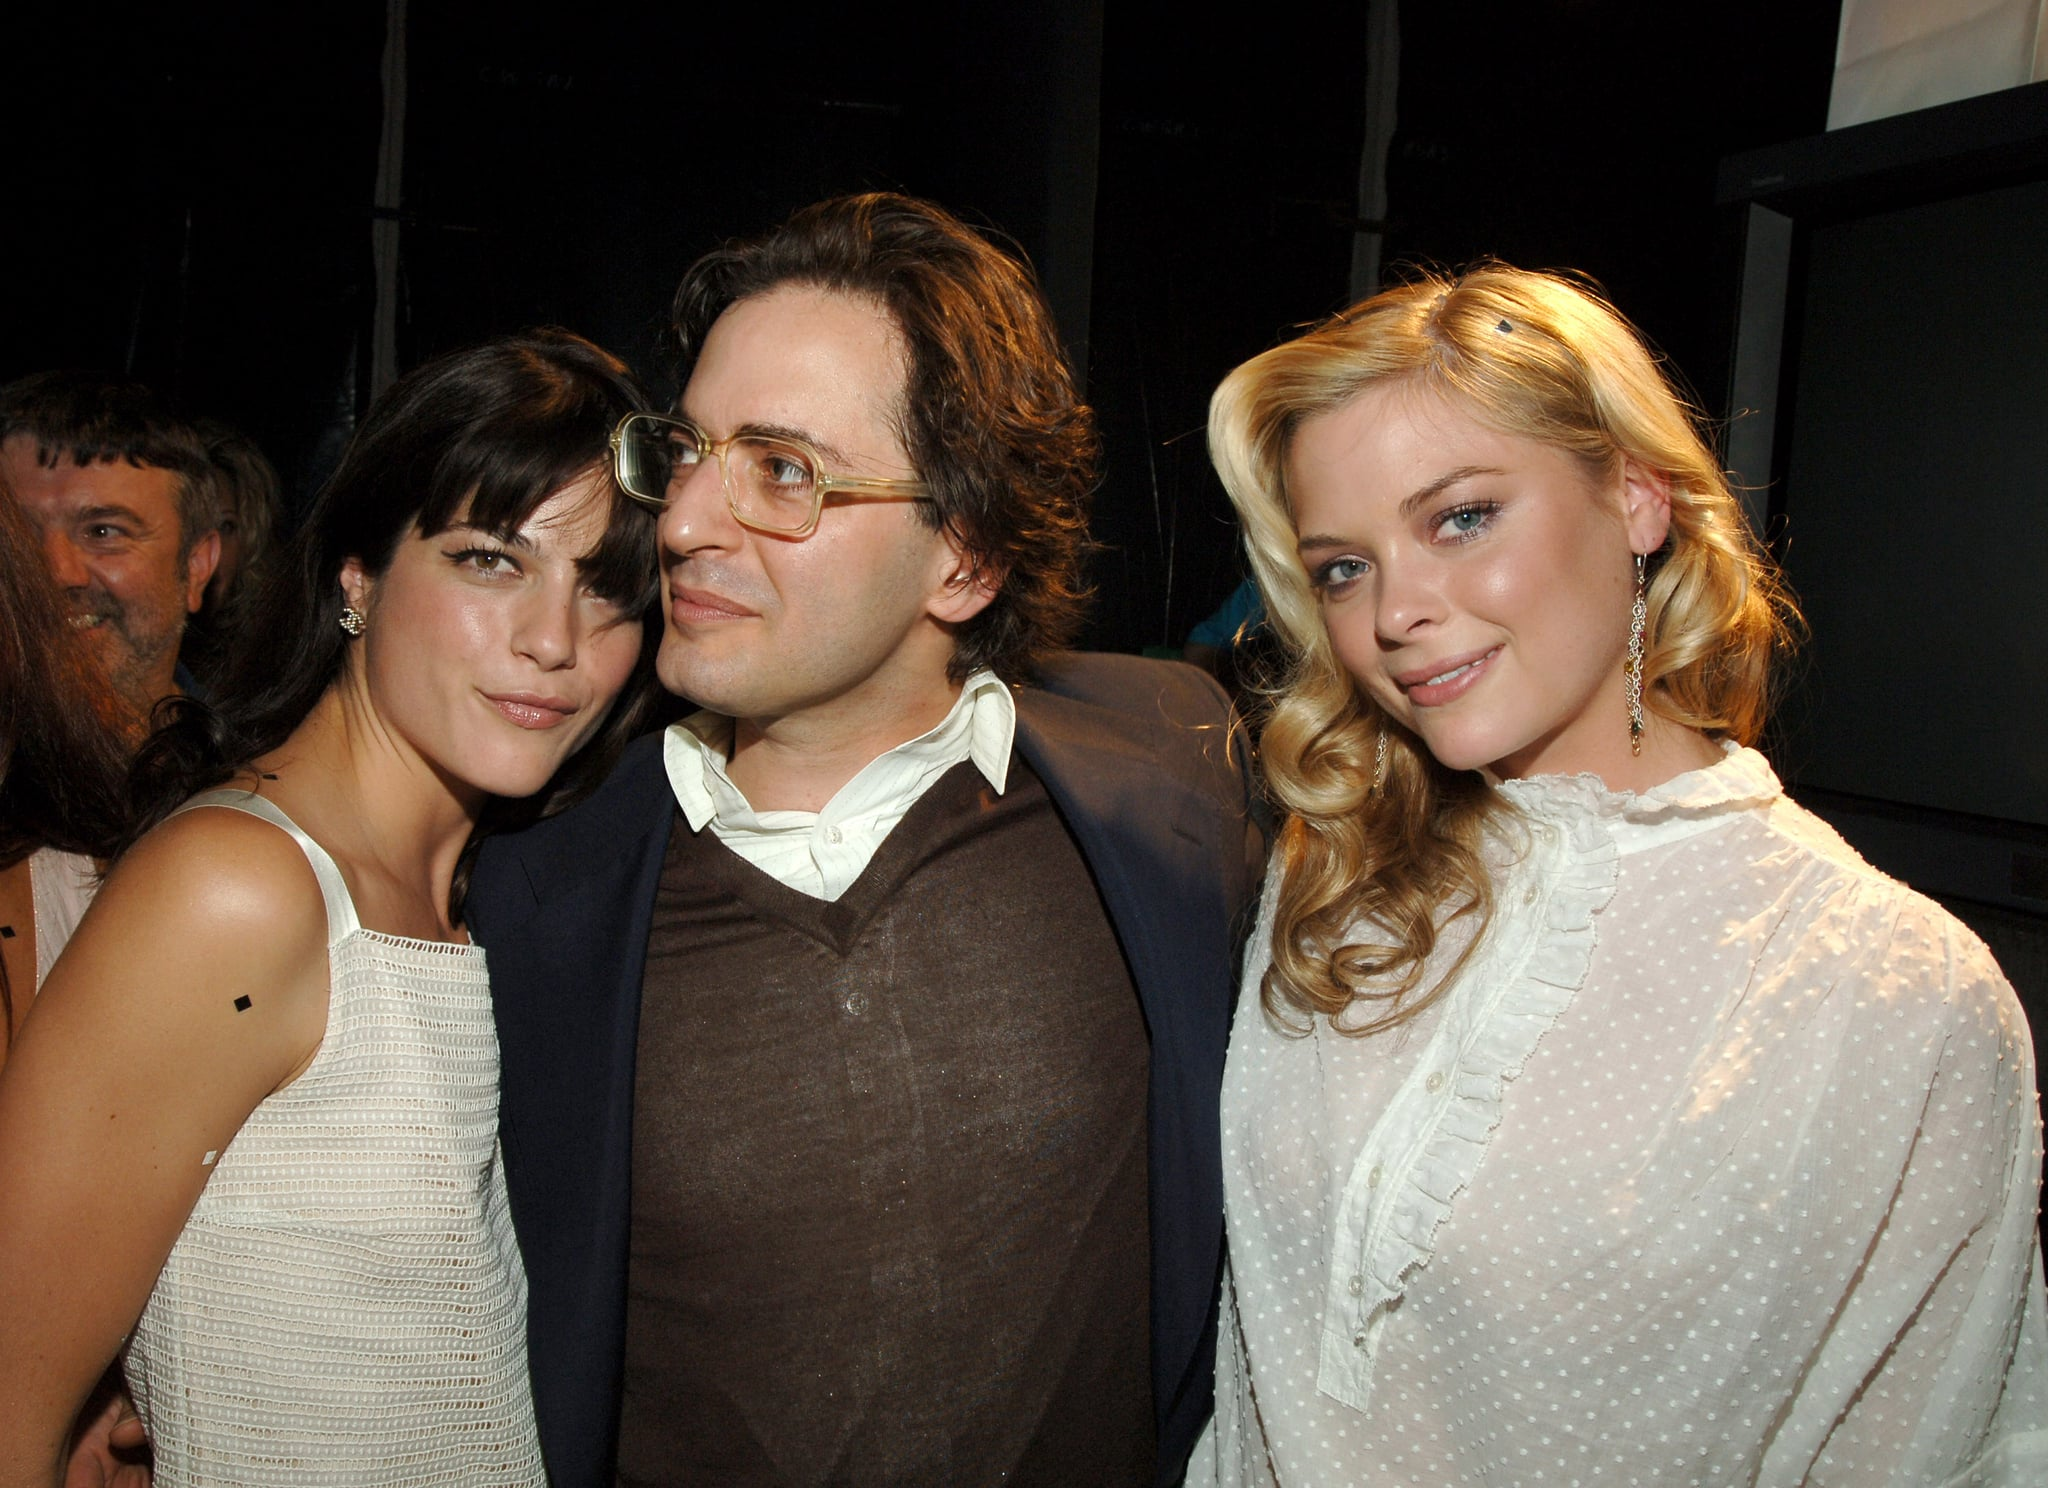 Selma Blair and Jaime King cozied up to Marc Jacobs while backstage at the designer's September 2005 show.